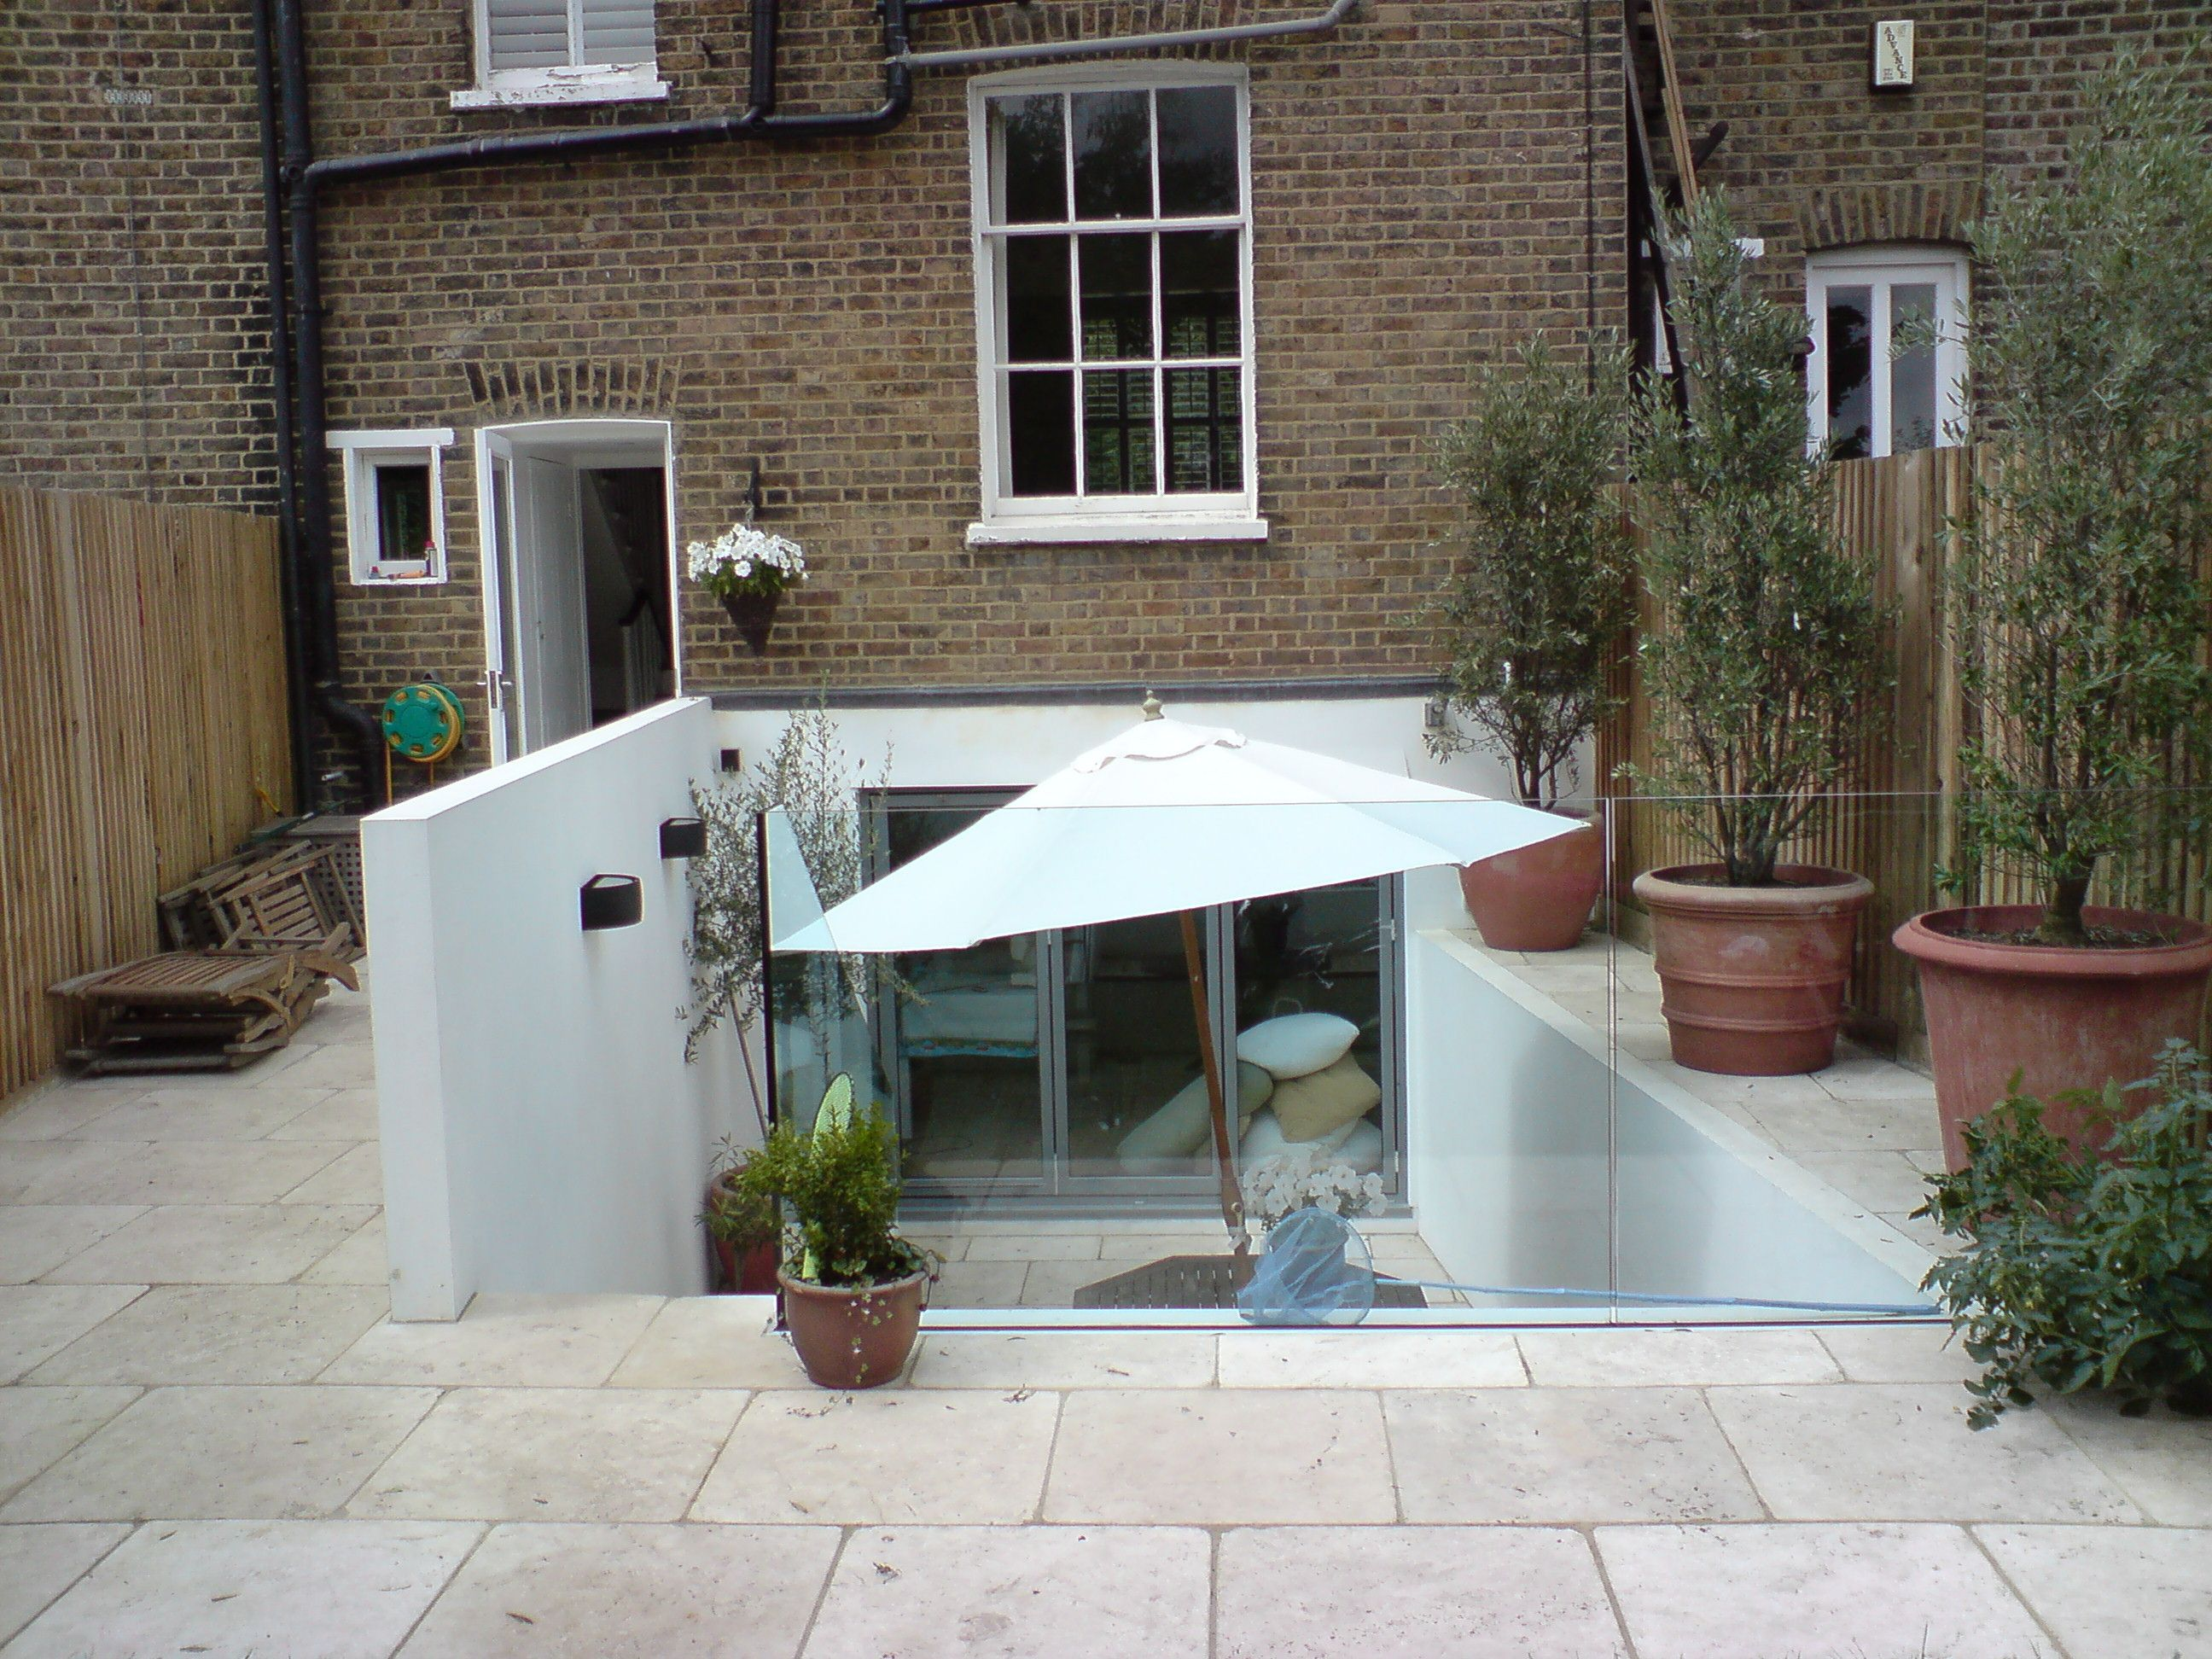 Cellar conversions and basement renovations in london and for Courtyard renovation ideas